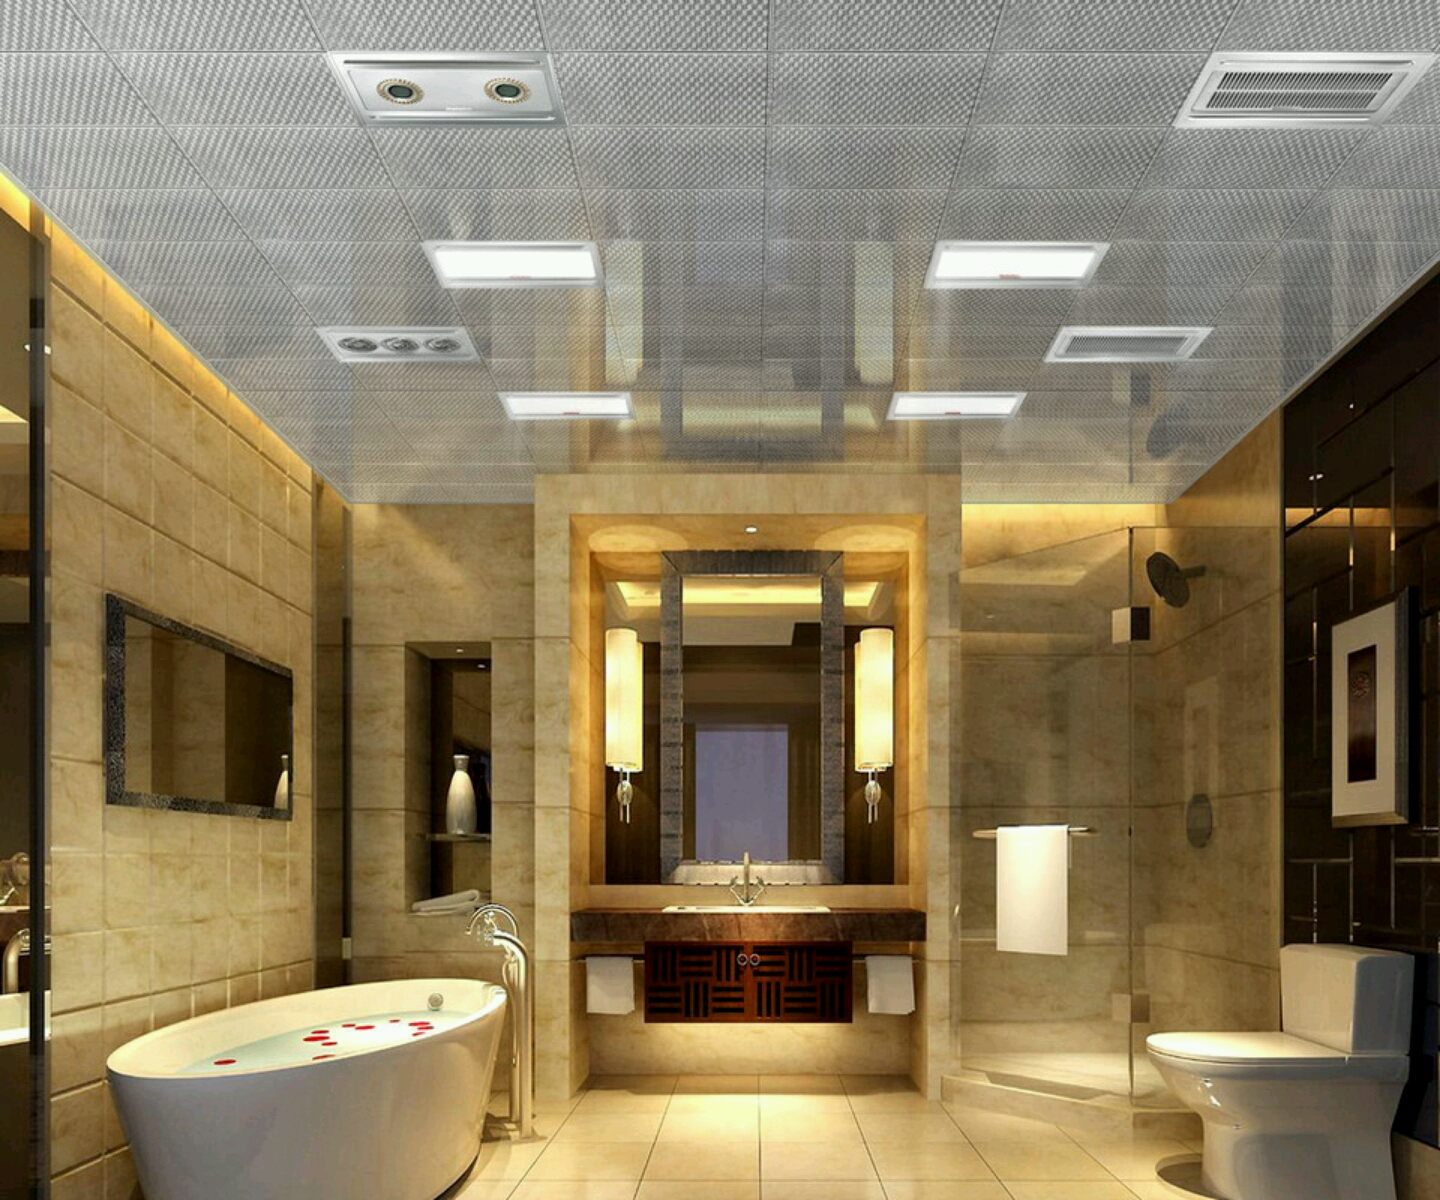 Luxury bathroom layout -  Luxury Bathroom Designs 2011 New